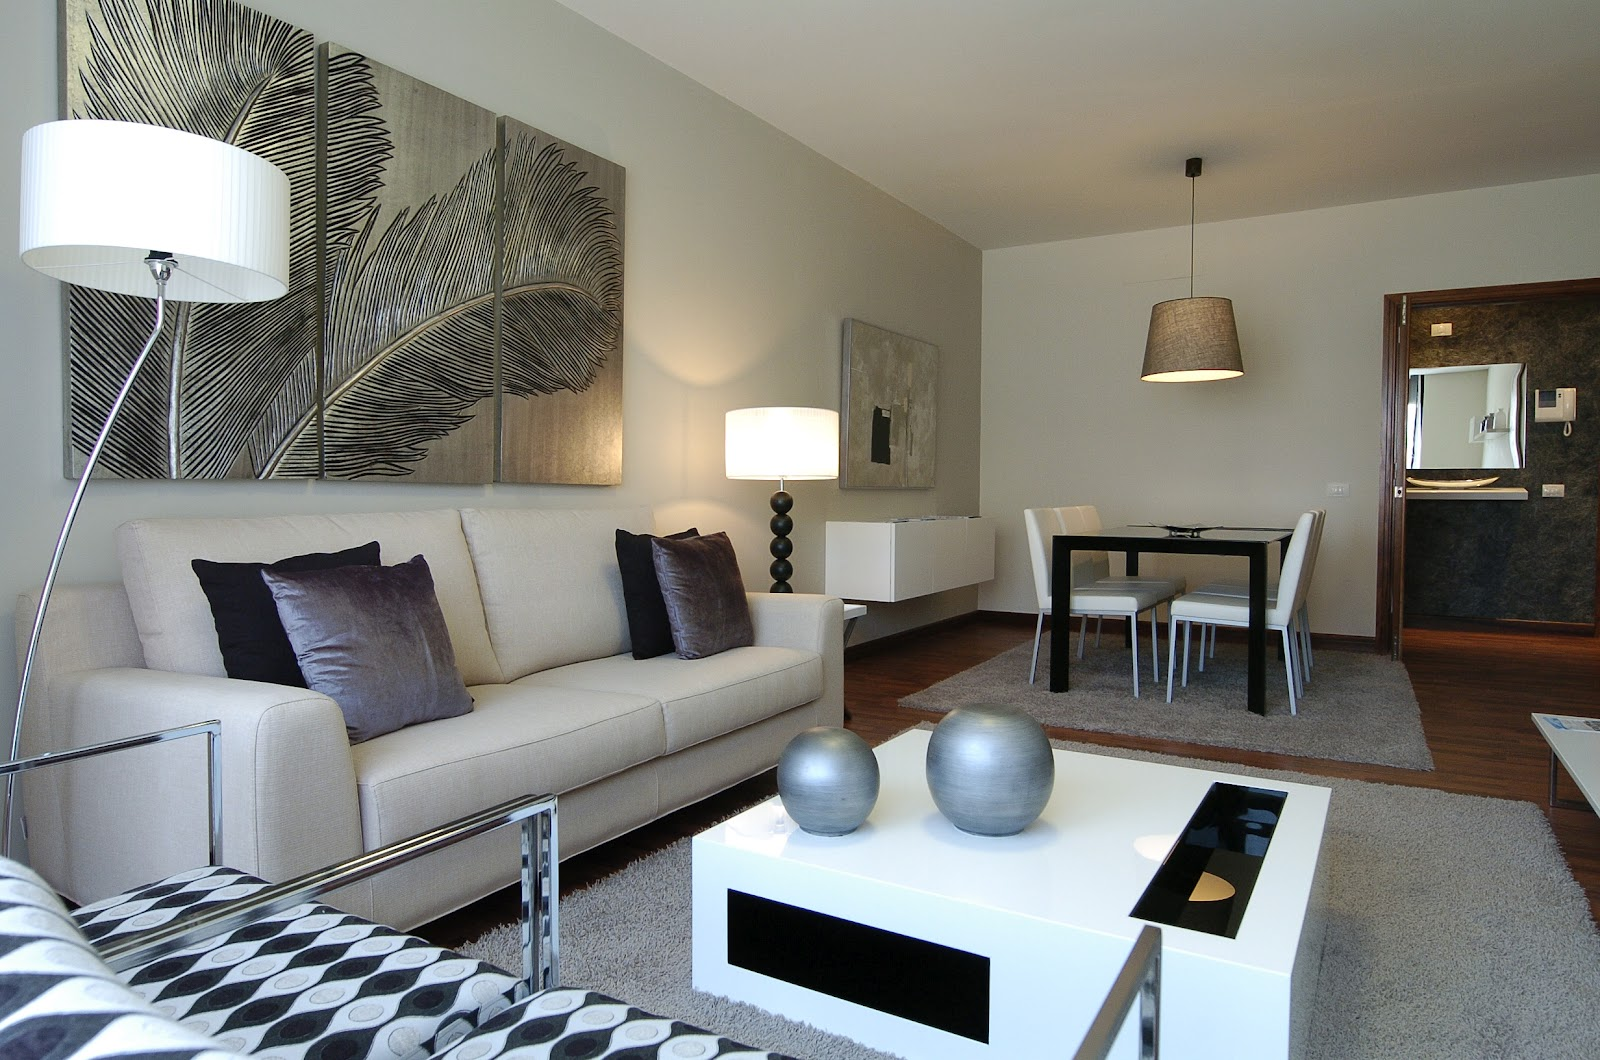 Comedores y salones interley interiores - Decoracion interiores salones modernos ...